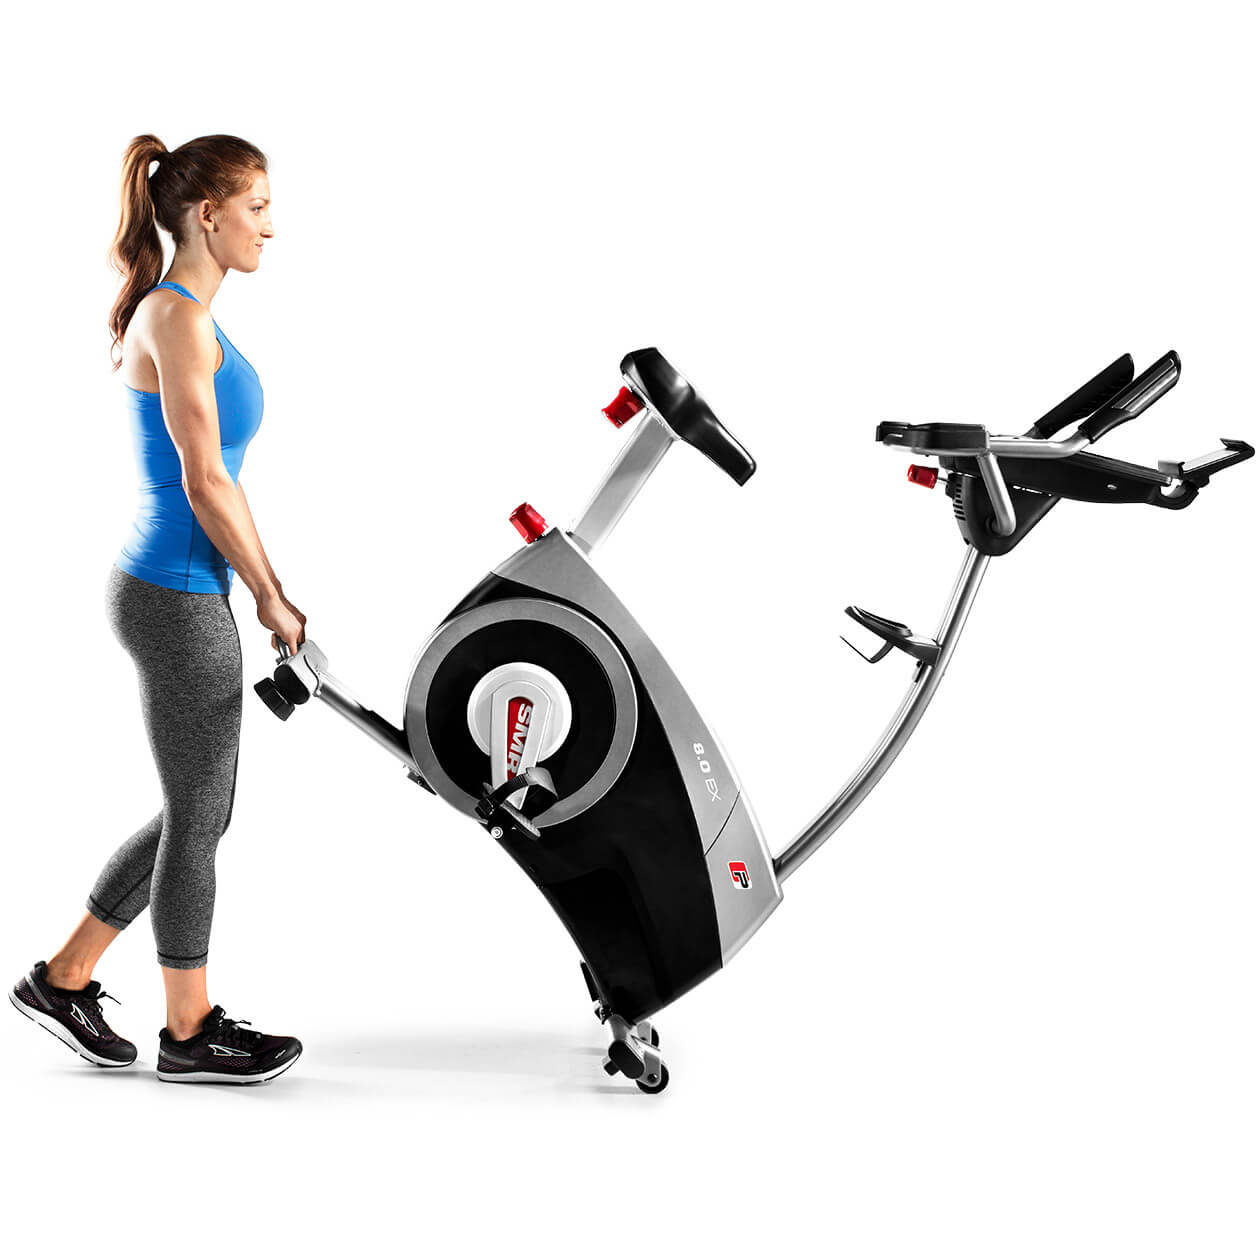 ProForm Exercise Bikes 8.0 EX  gallery image 7